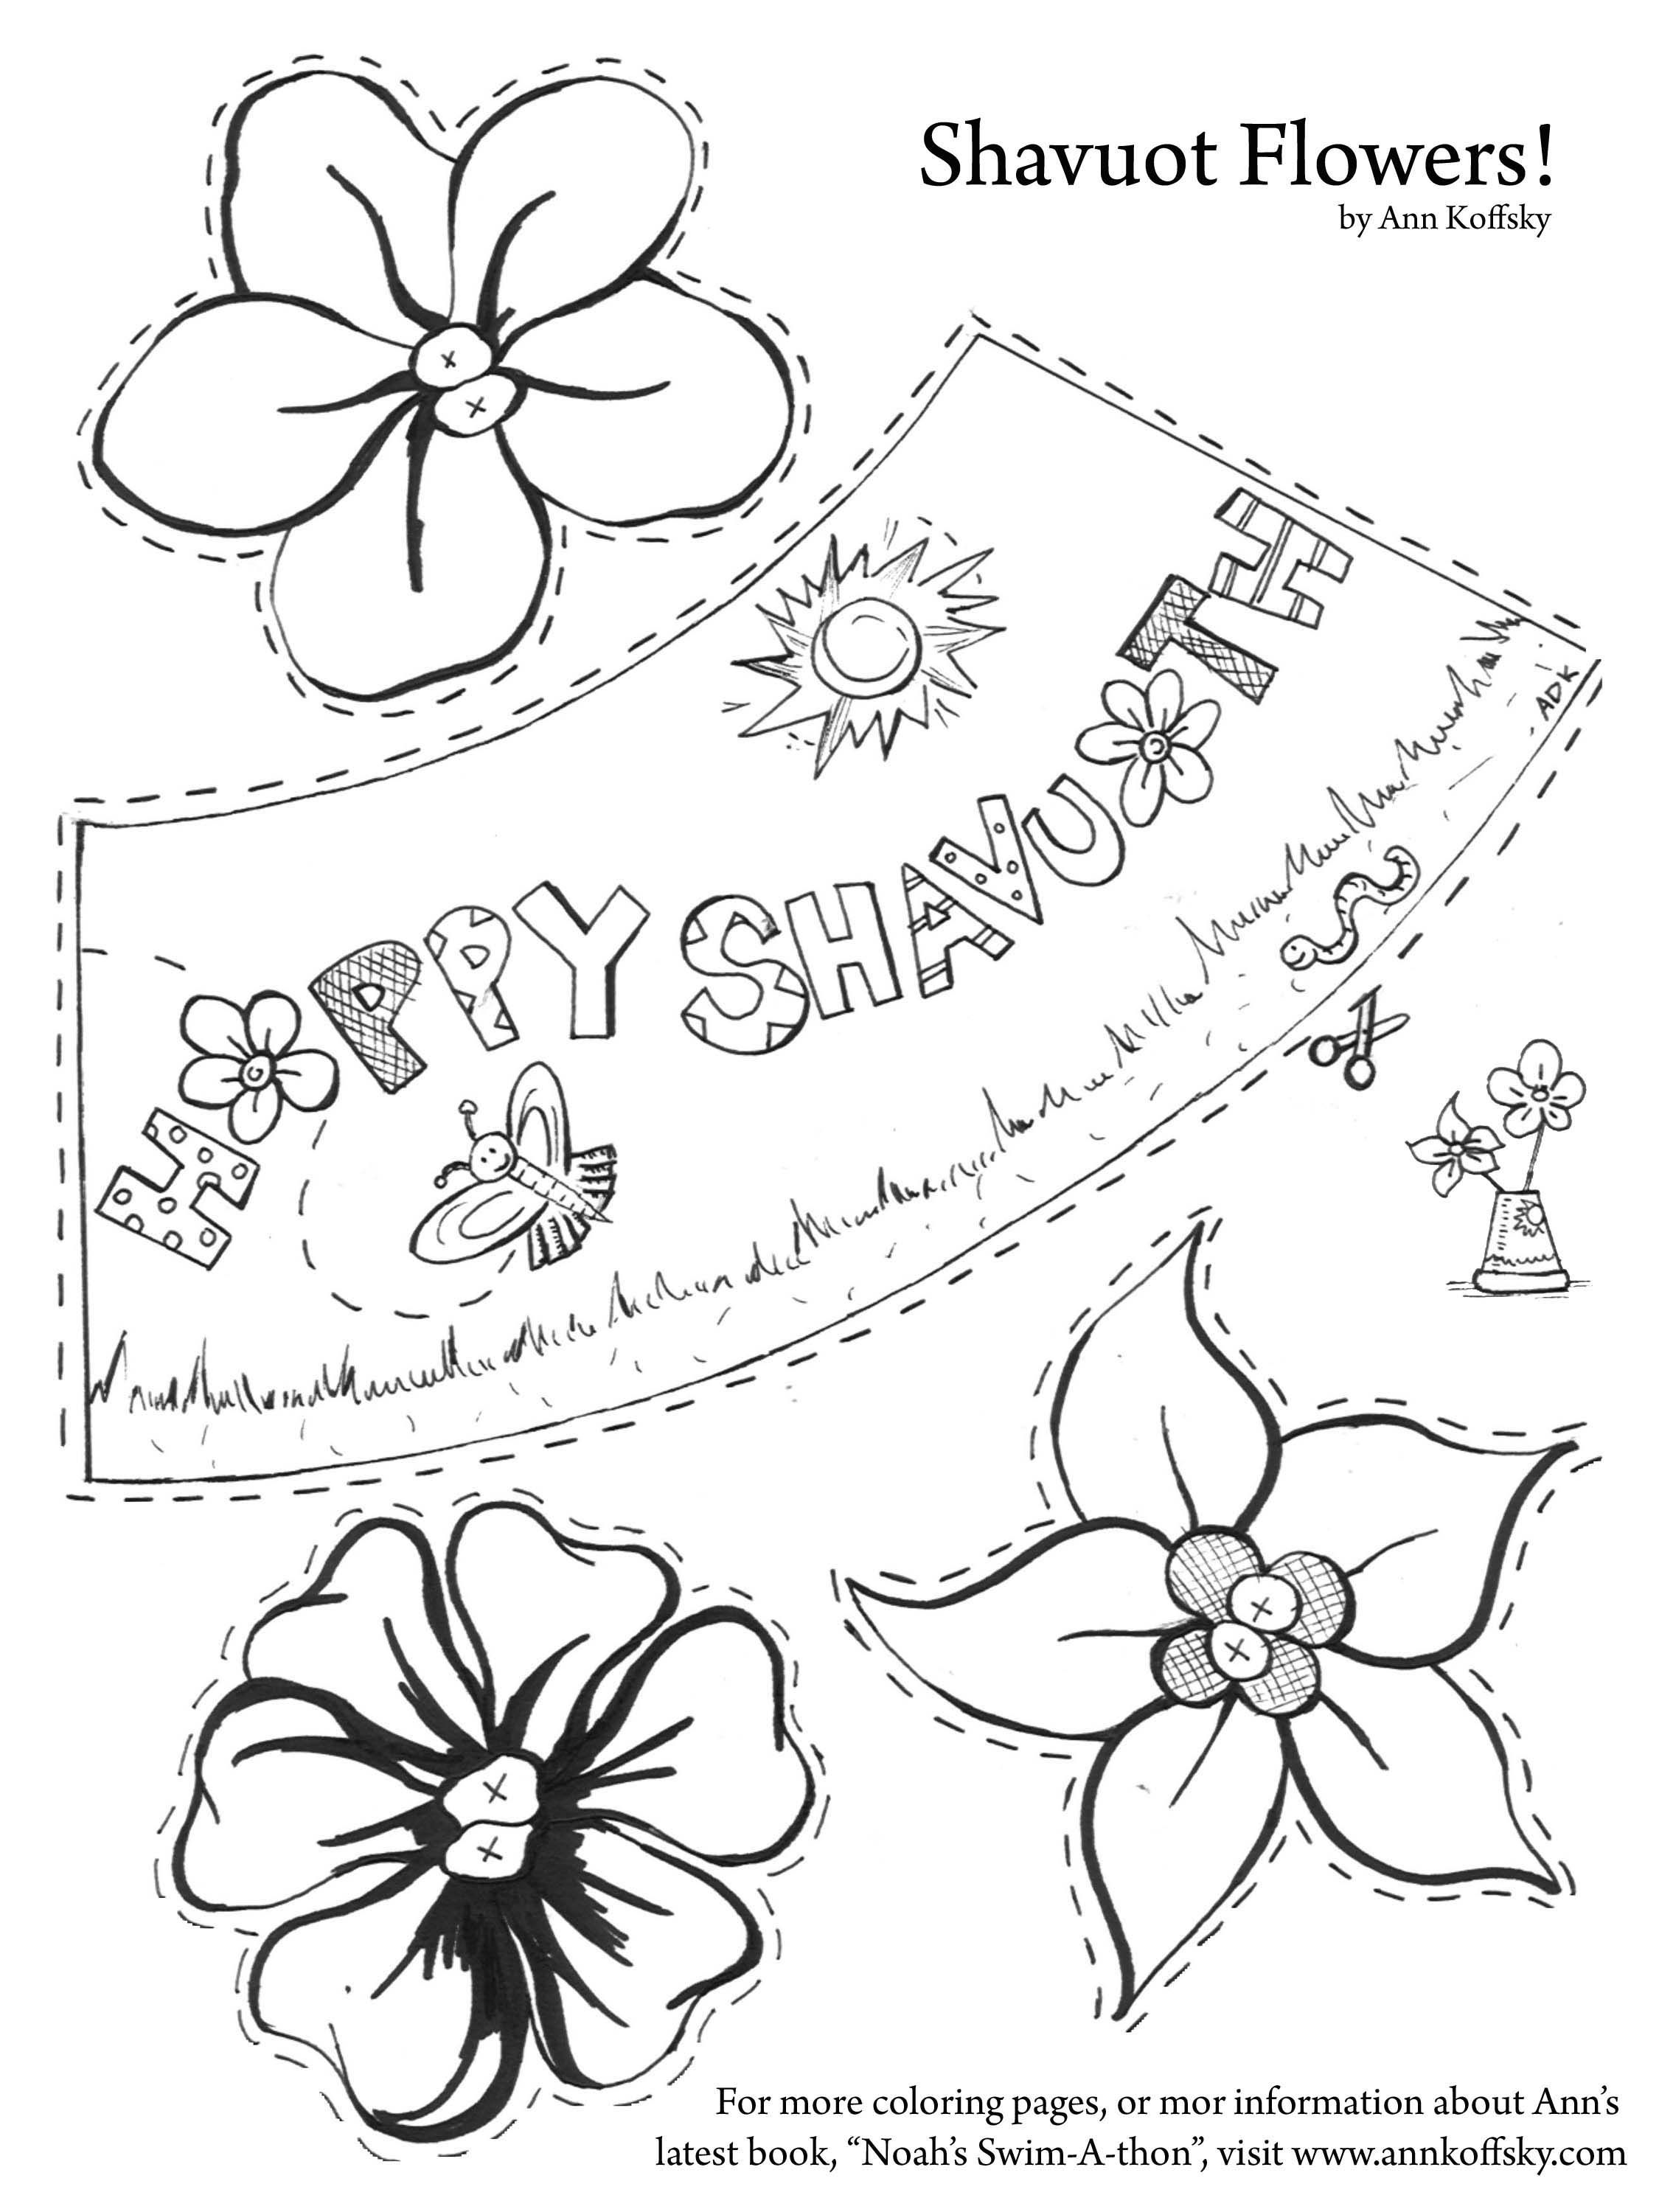 Arte color estamparia divinopolis - A Shavuot Activity Page Quick Directions 1 Color In The Pictures 2